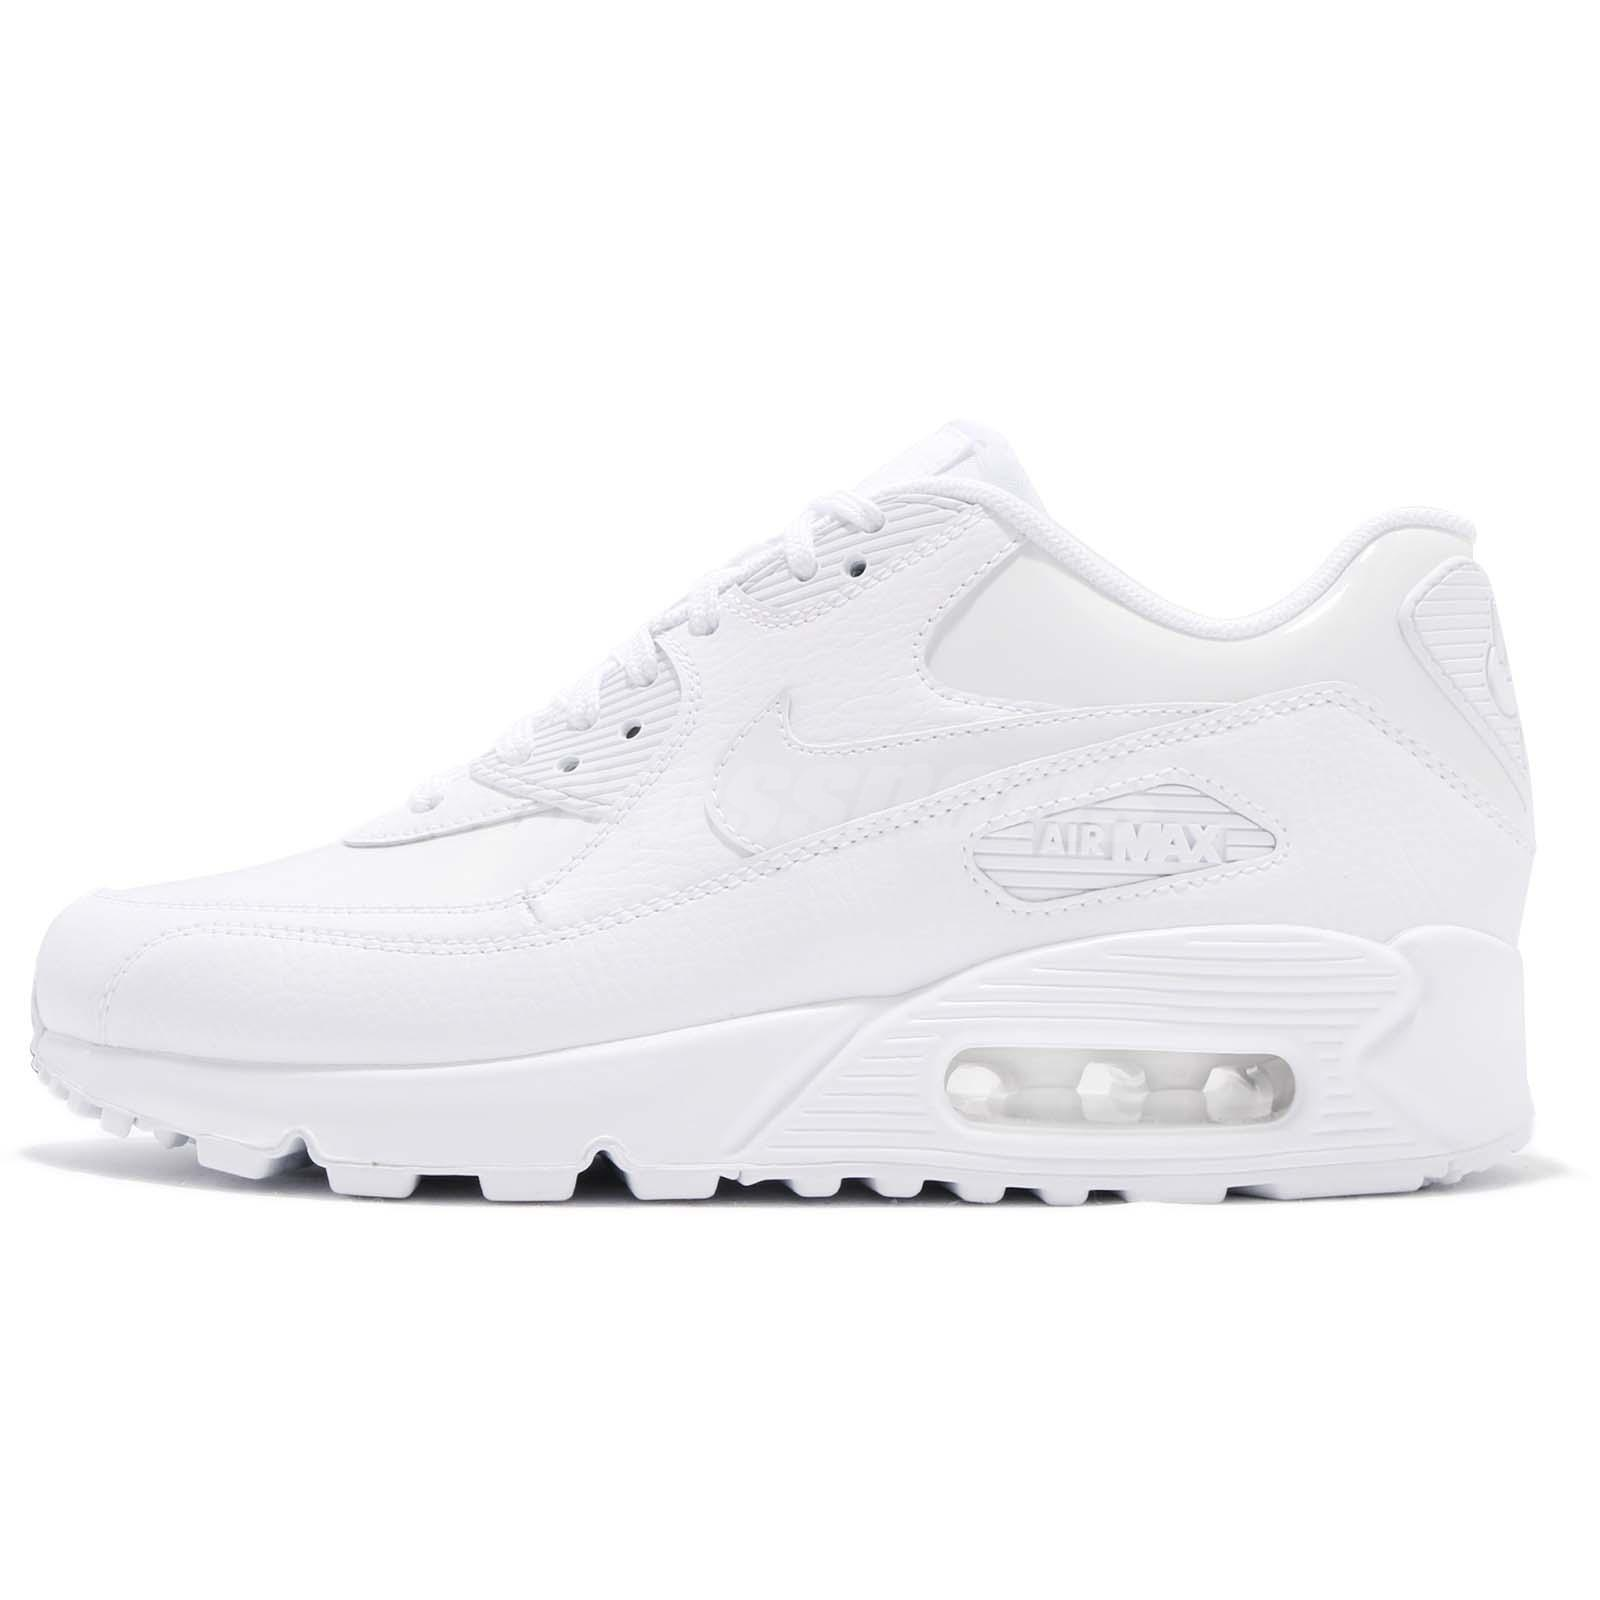 Nike Wmns Air Max 90 LEA Patent Leather Triple White Women Running 921304101